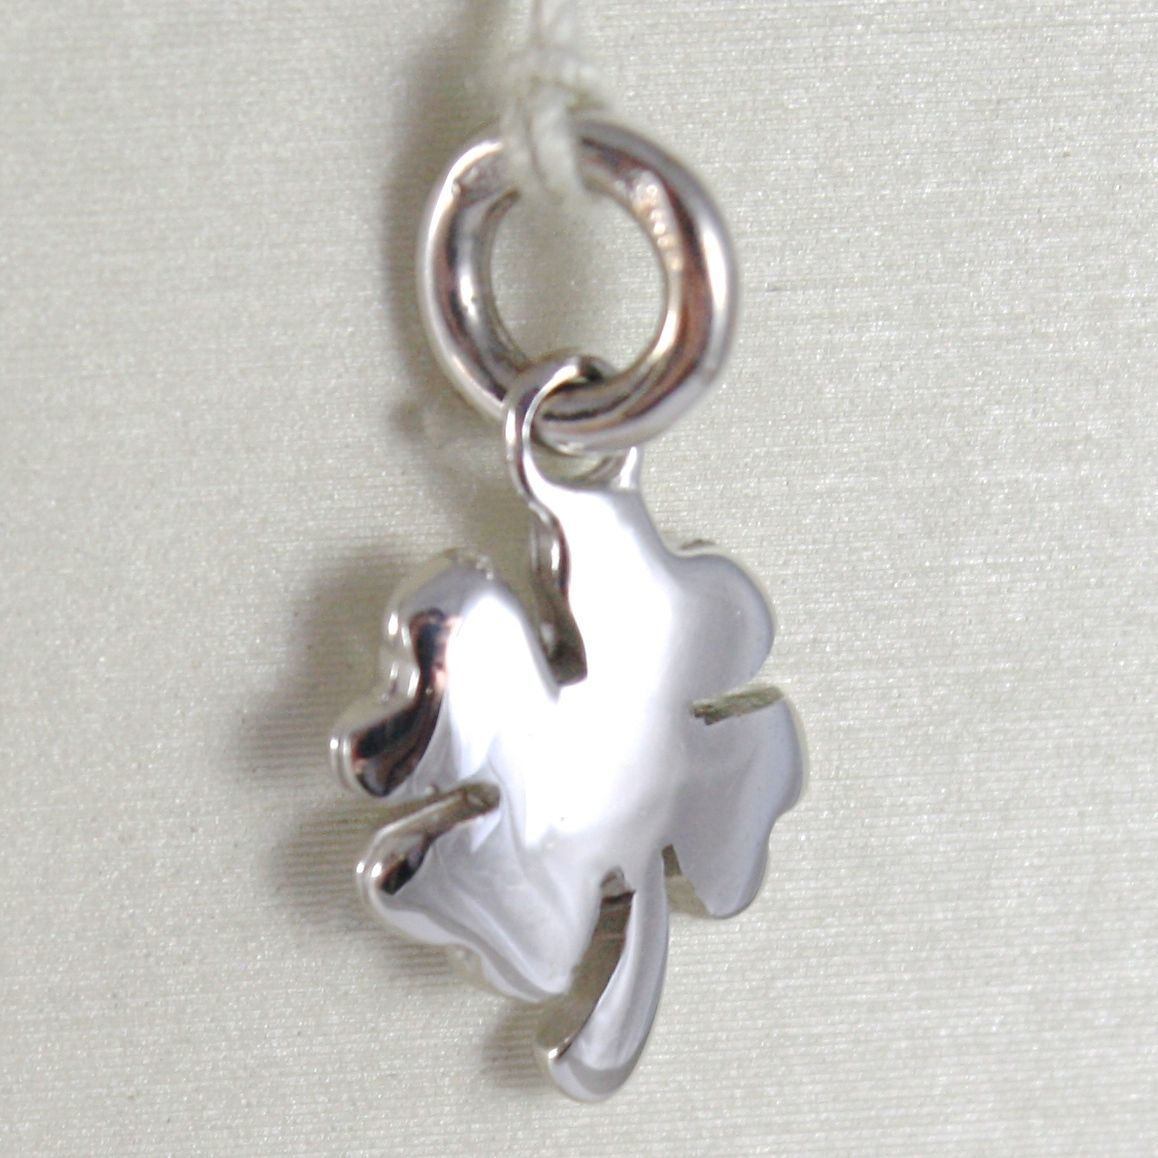 WHITE GOLD PENDANT 750 18K FOUR-LEAF CLOVER SOLID, LONG 1.7 CM, MADE IN ITALY